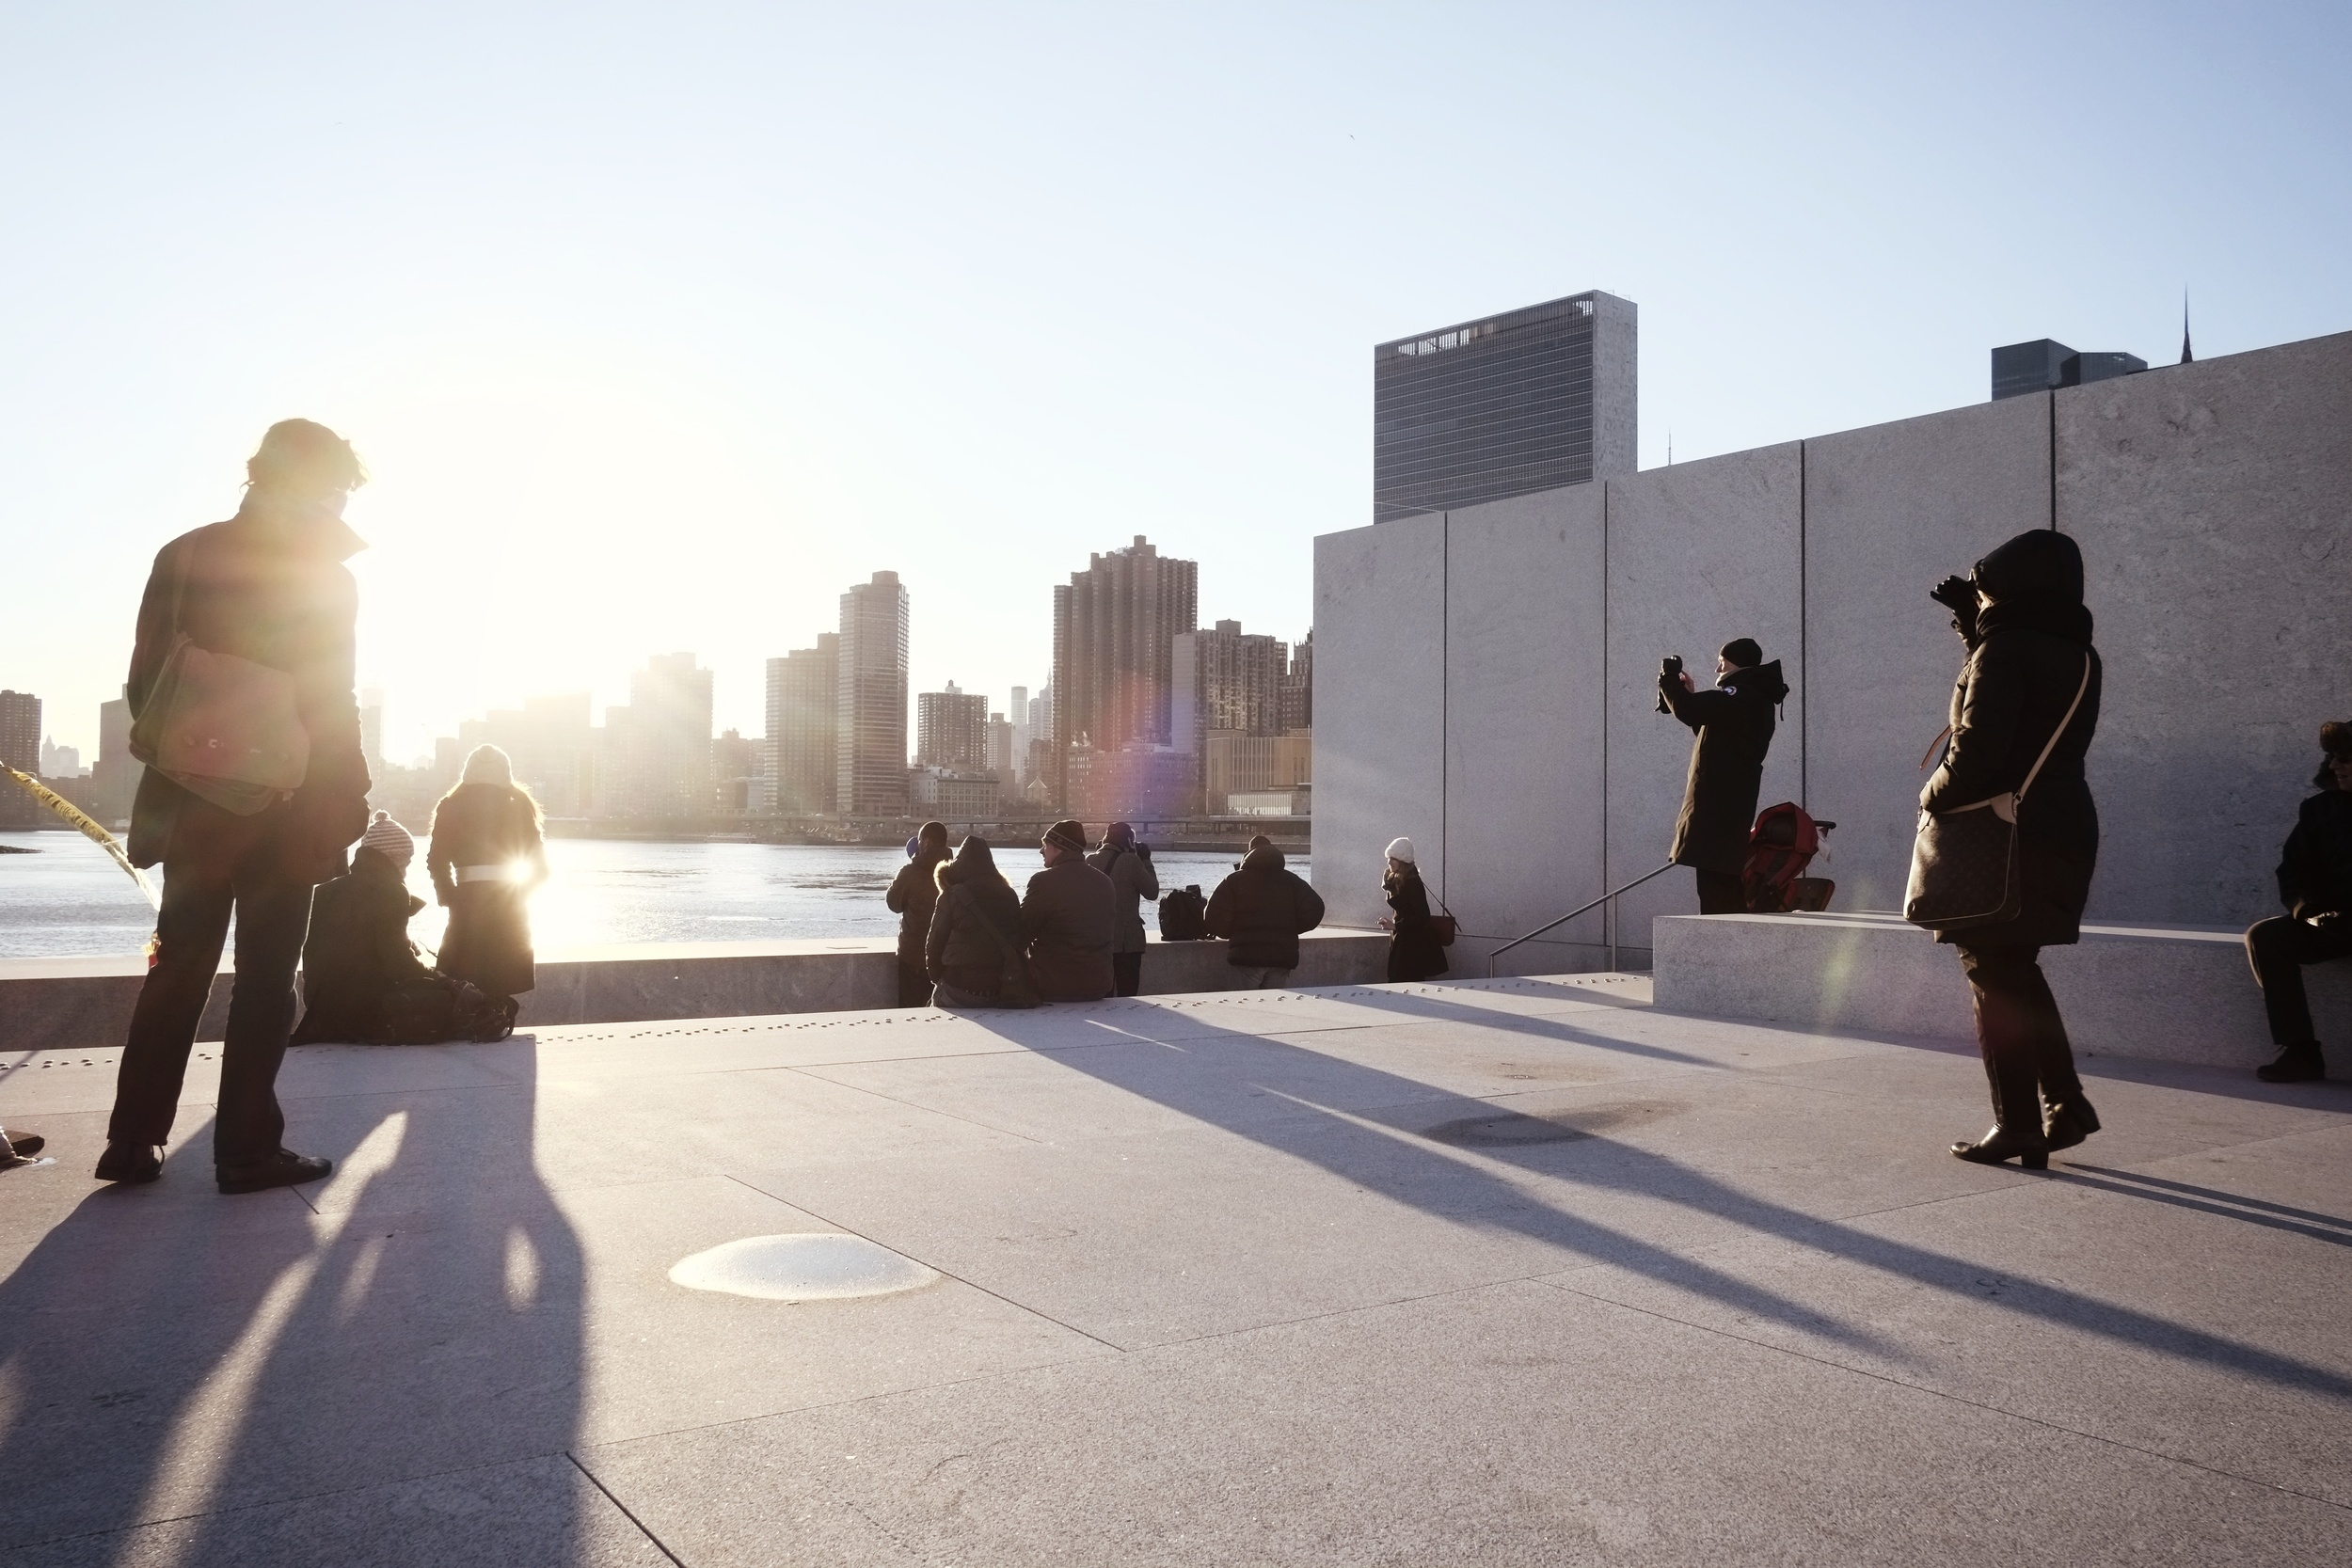 Louis Kahn's FDR Four Freedoms Park on Roosevelt Island. ISO 250, f8, 1/280 at 18mm.